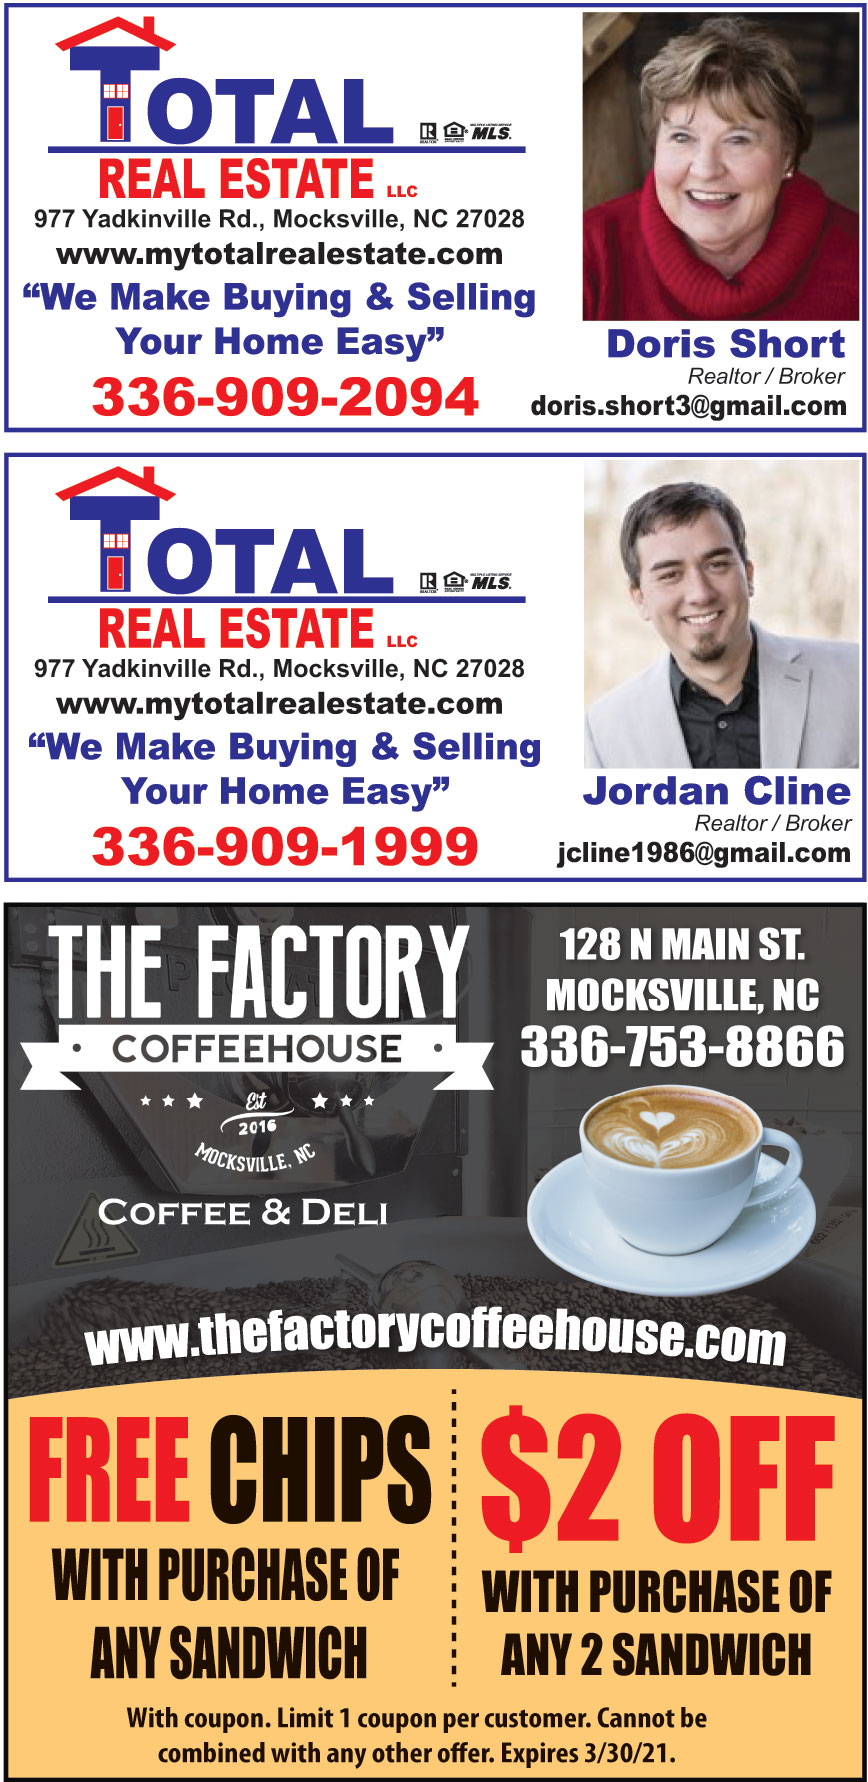 TOTAL REAL ESTATE 2